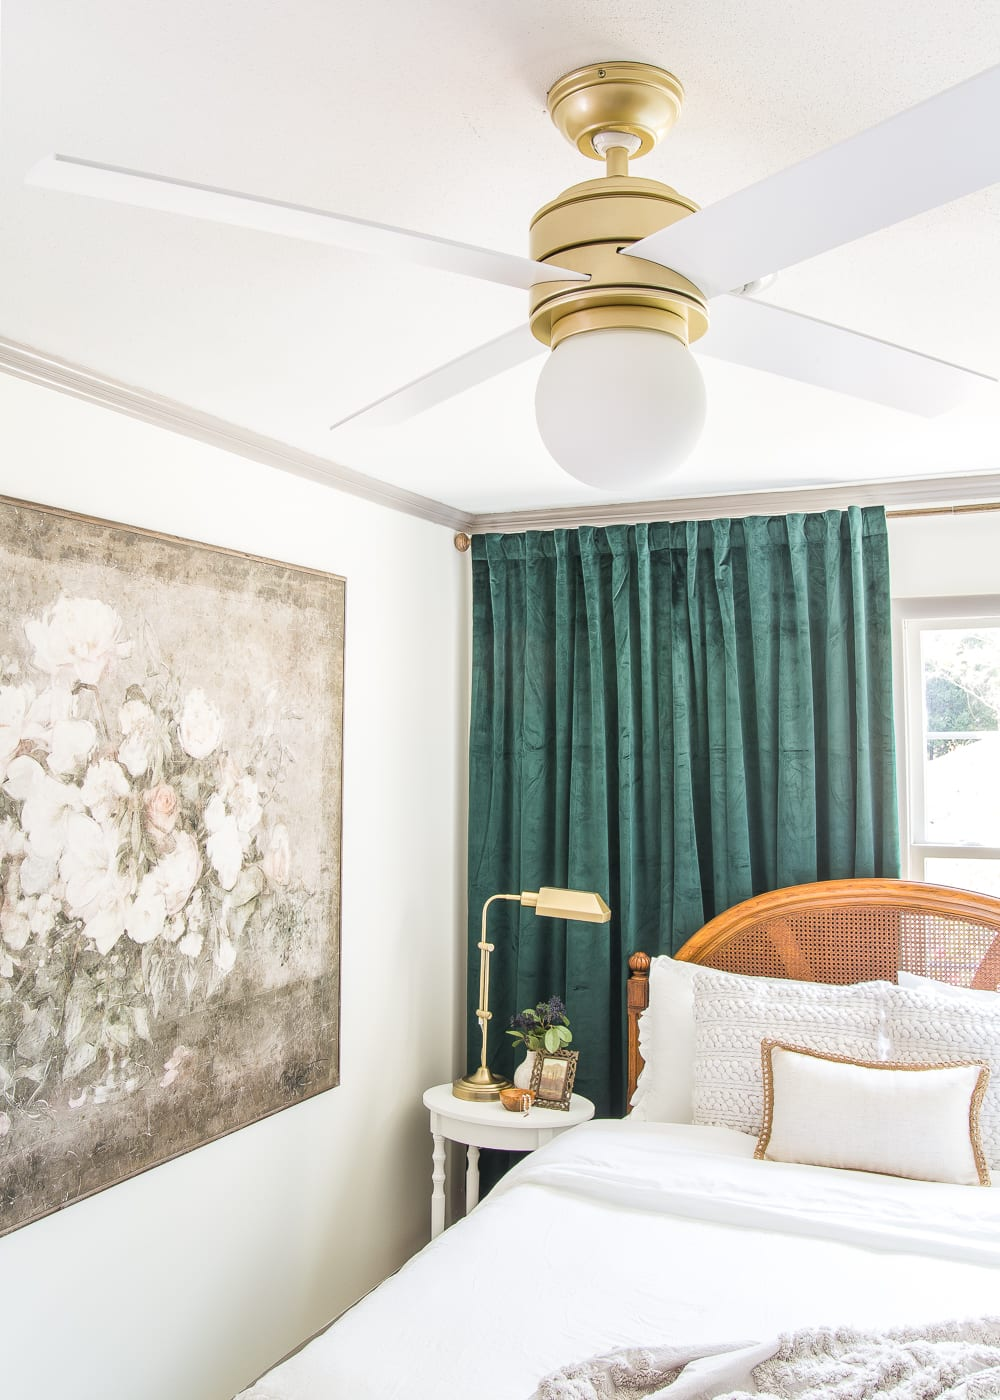 Gorgeous matte brass modern ceiling fan in a bedroom